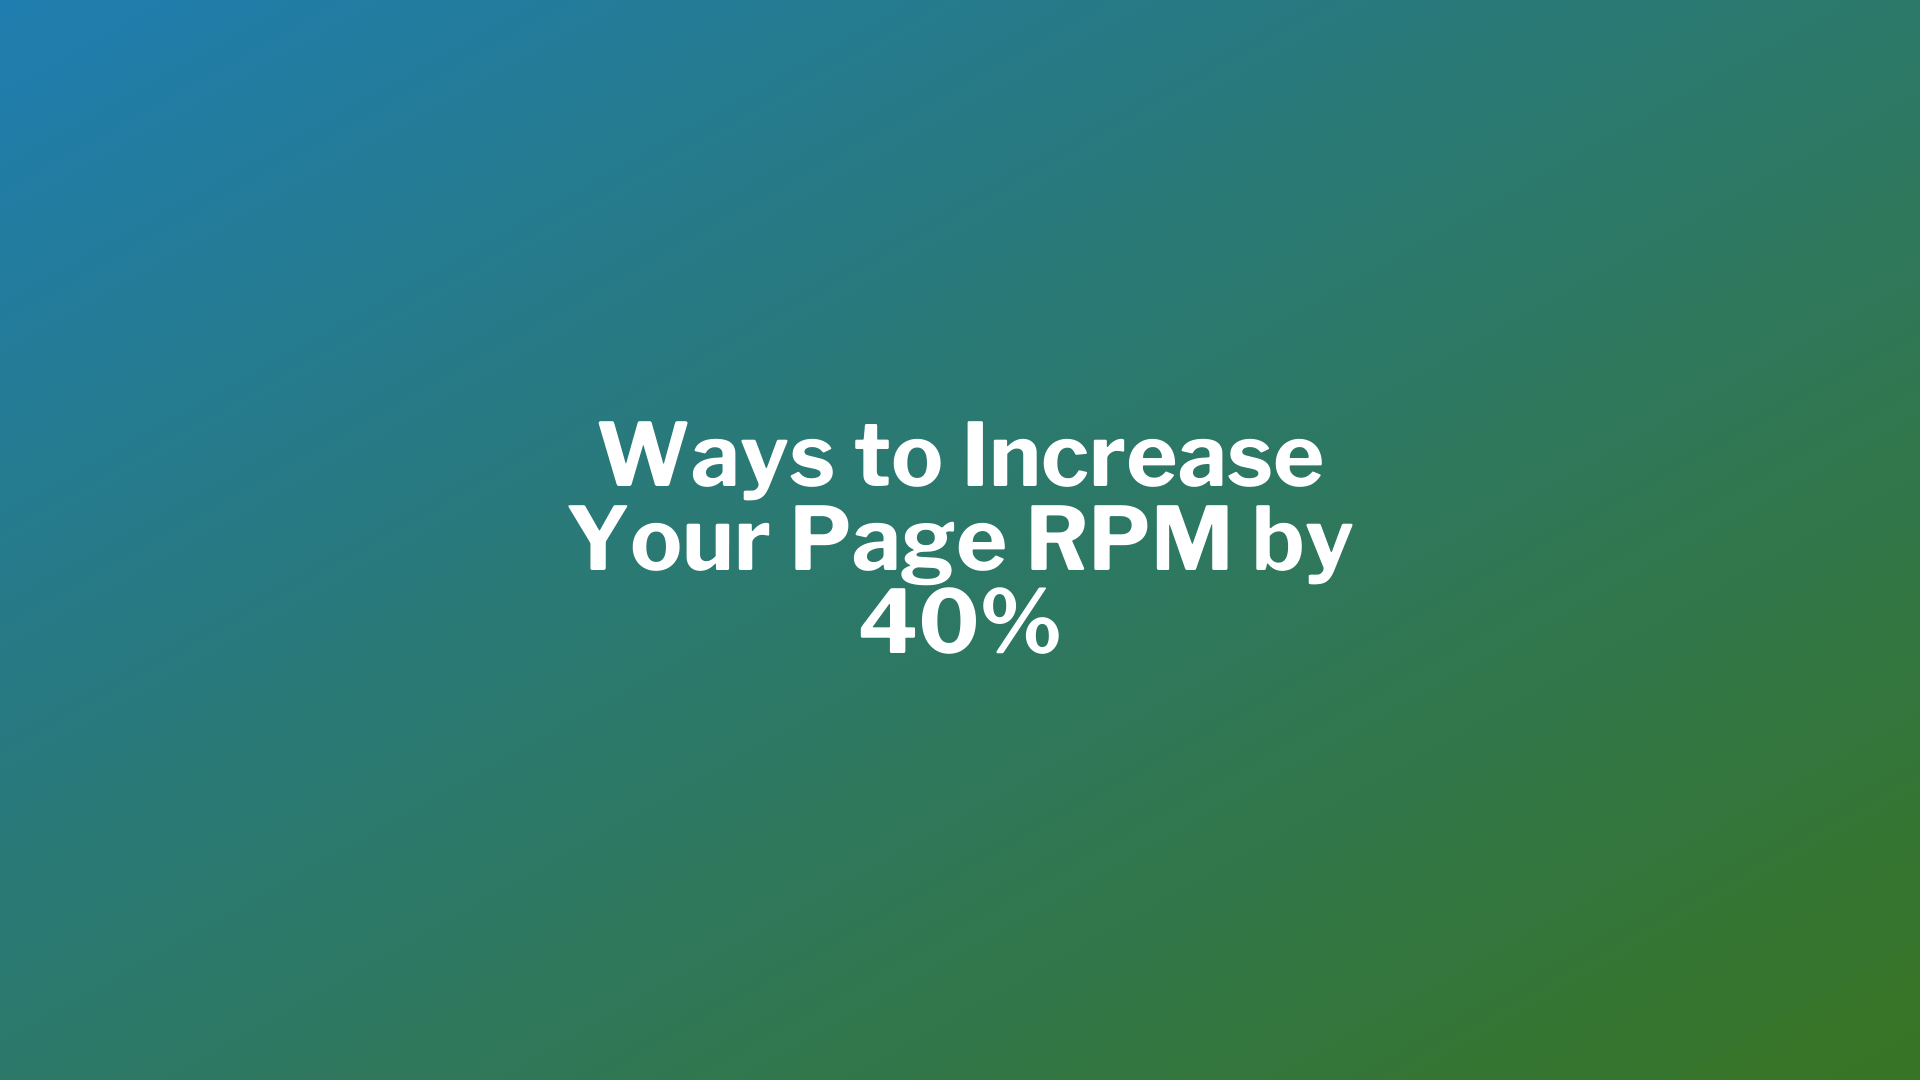 Increase Page RPM